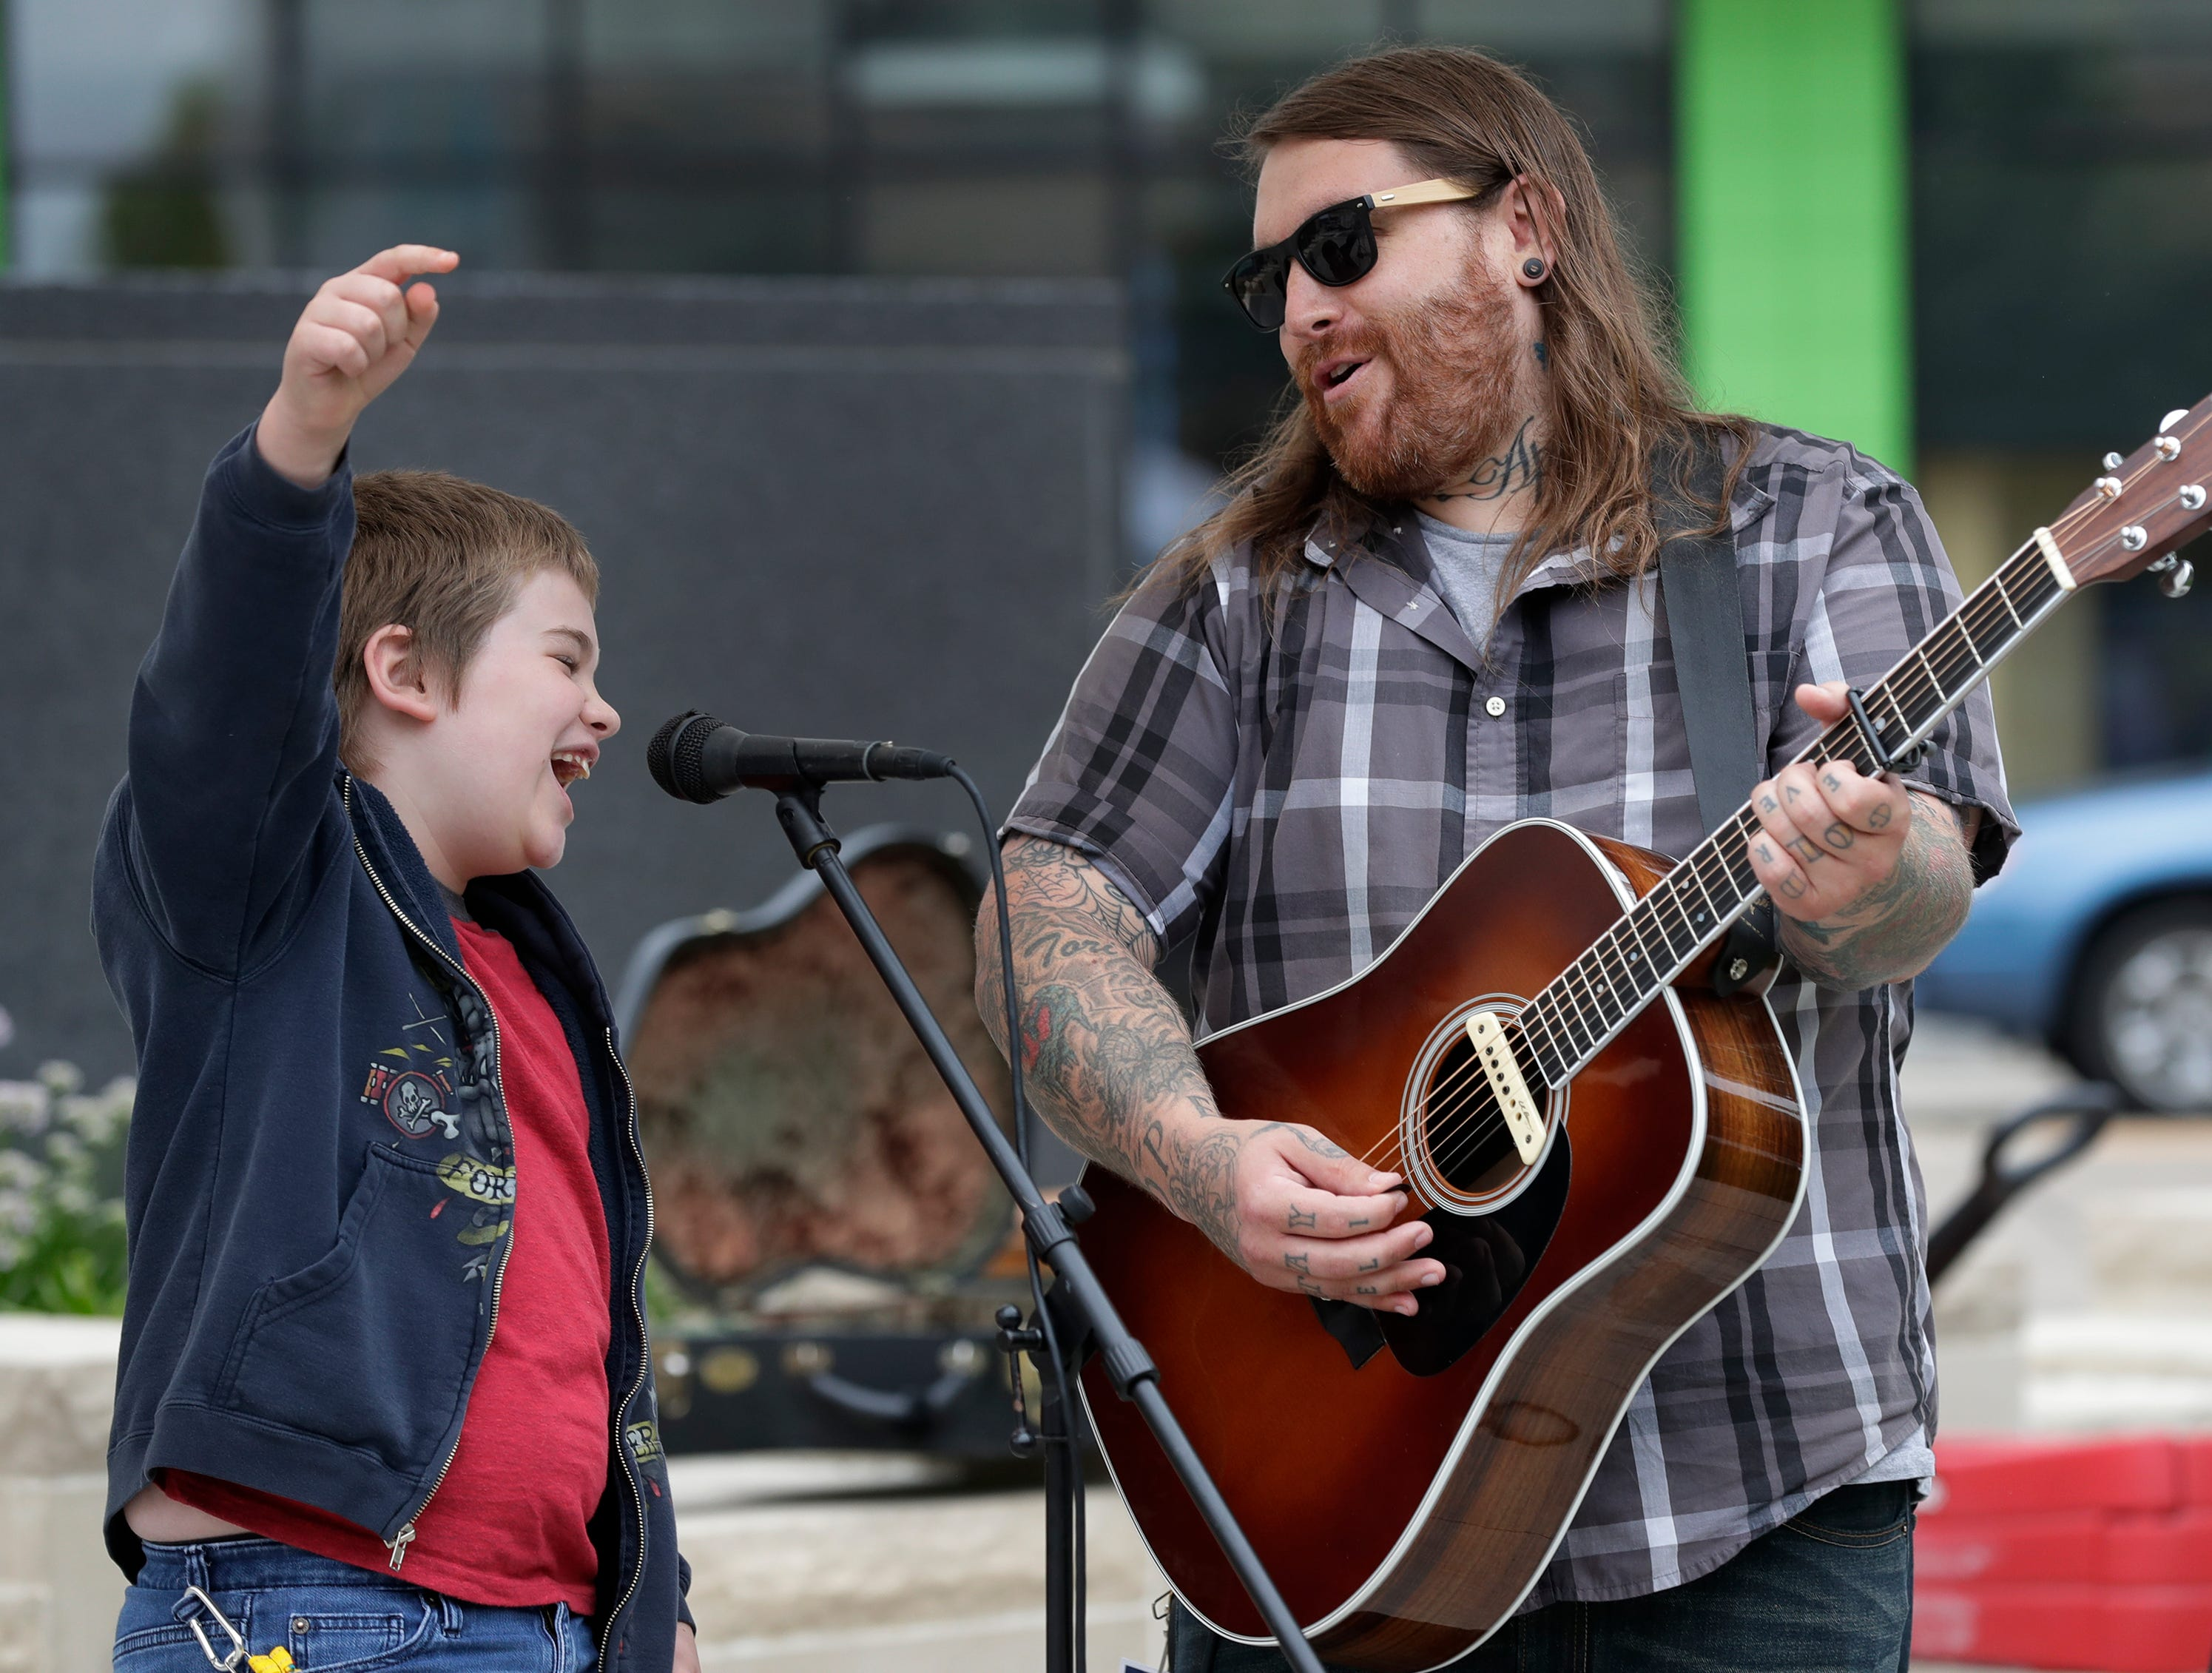 Oliver Gold, 9, left, performs a duet with his father Christopher Gold at Houdini Plaza during the Mile of Music Thursday, August 2, 2018, in Appleton, Wis.  Dan Powers/USA TODAY NETWORK-Wisconsin